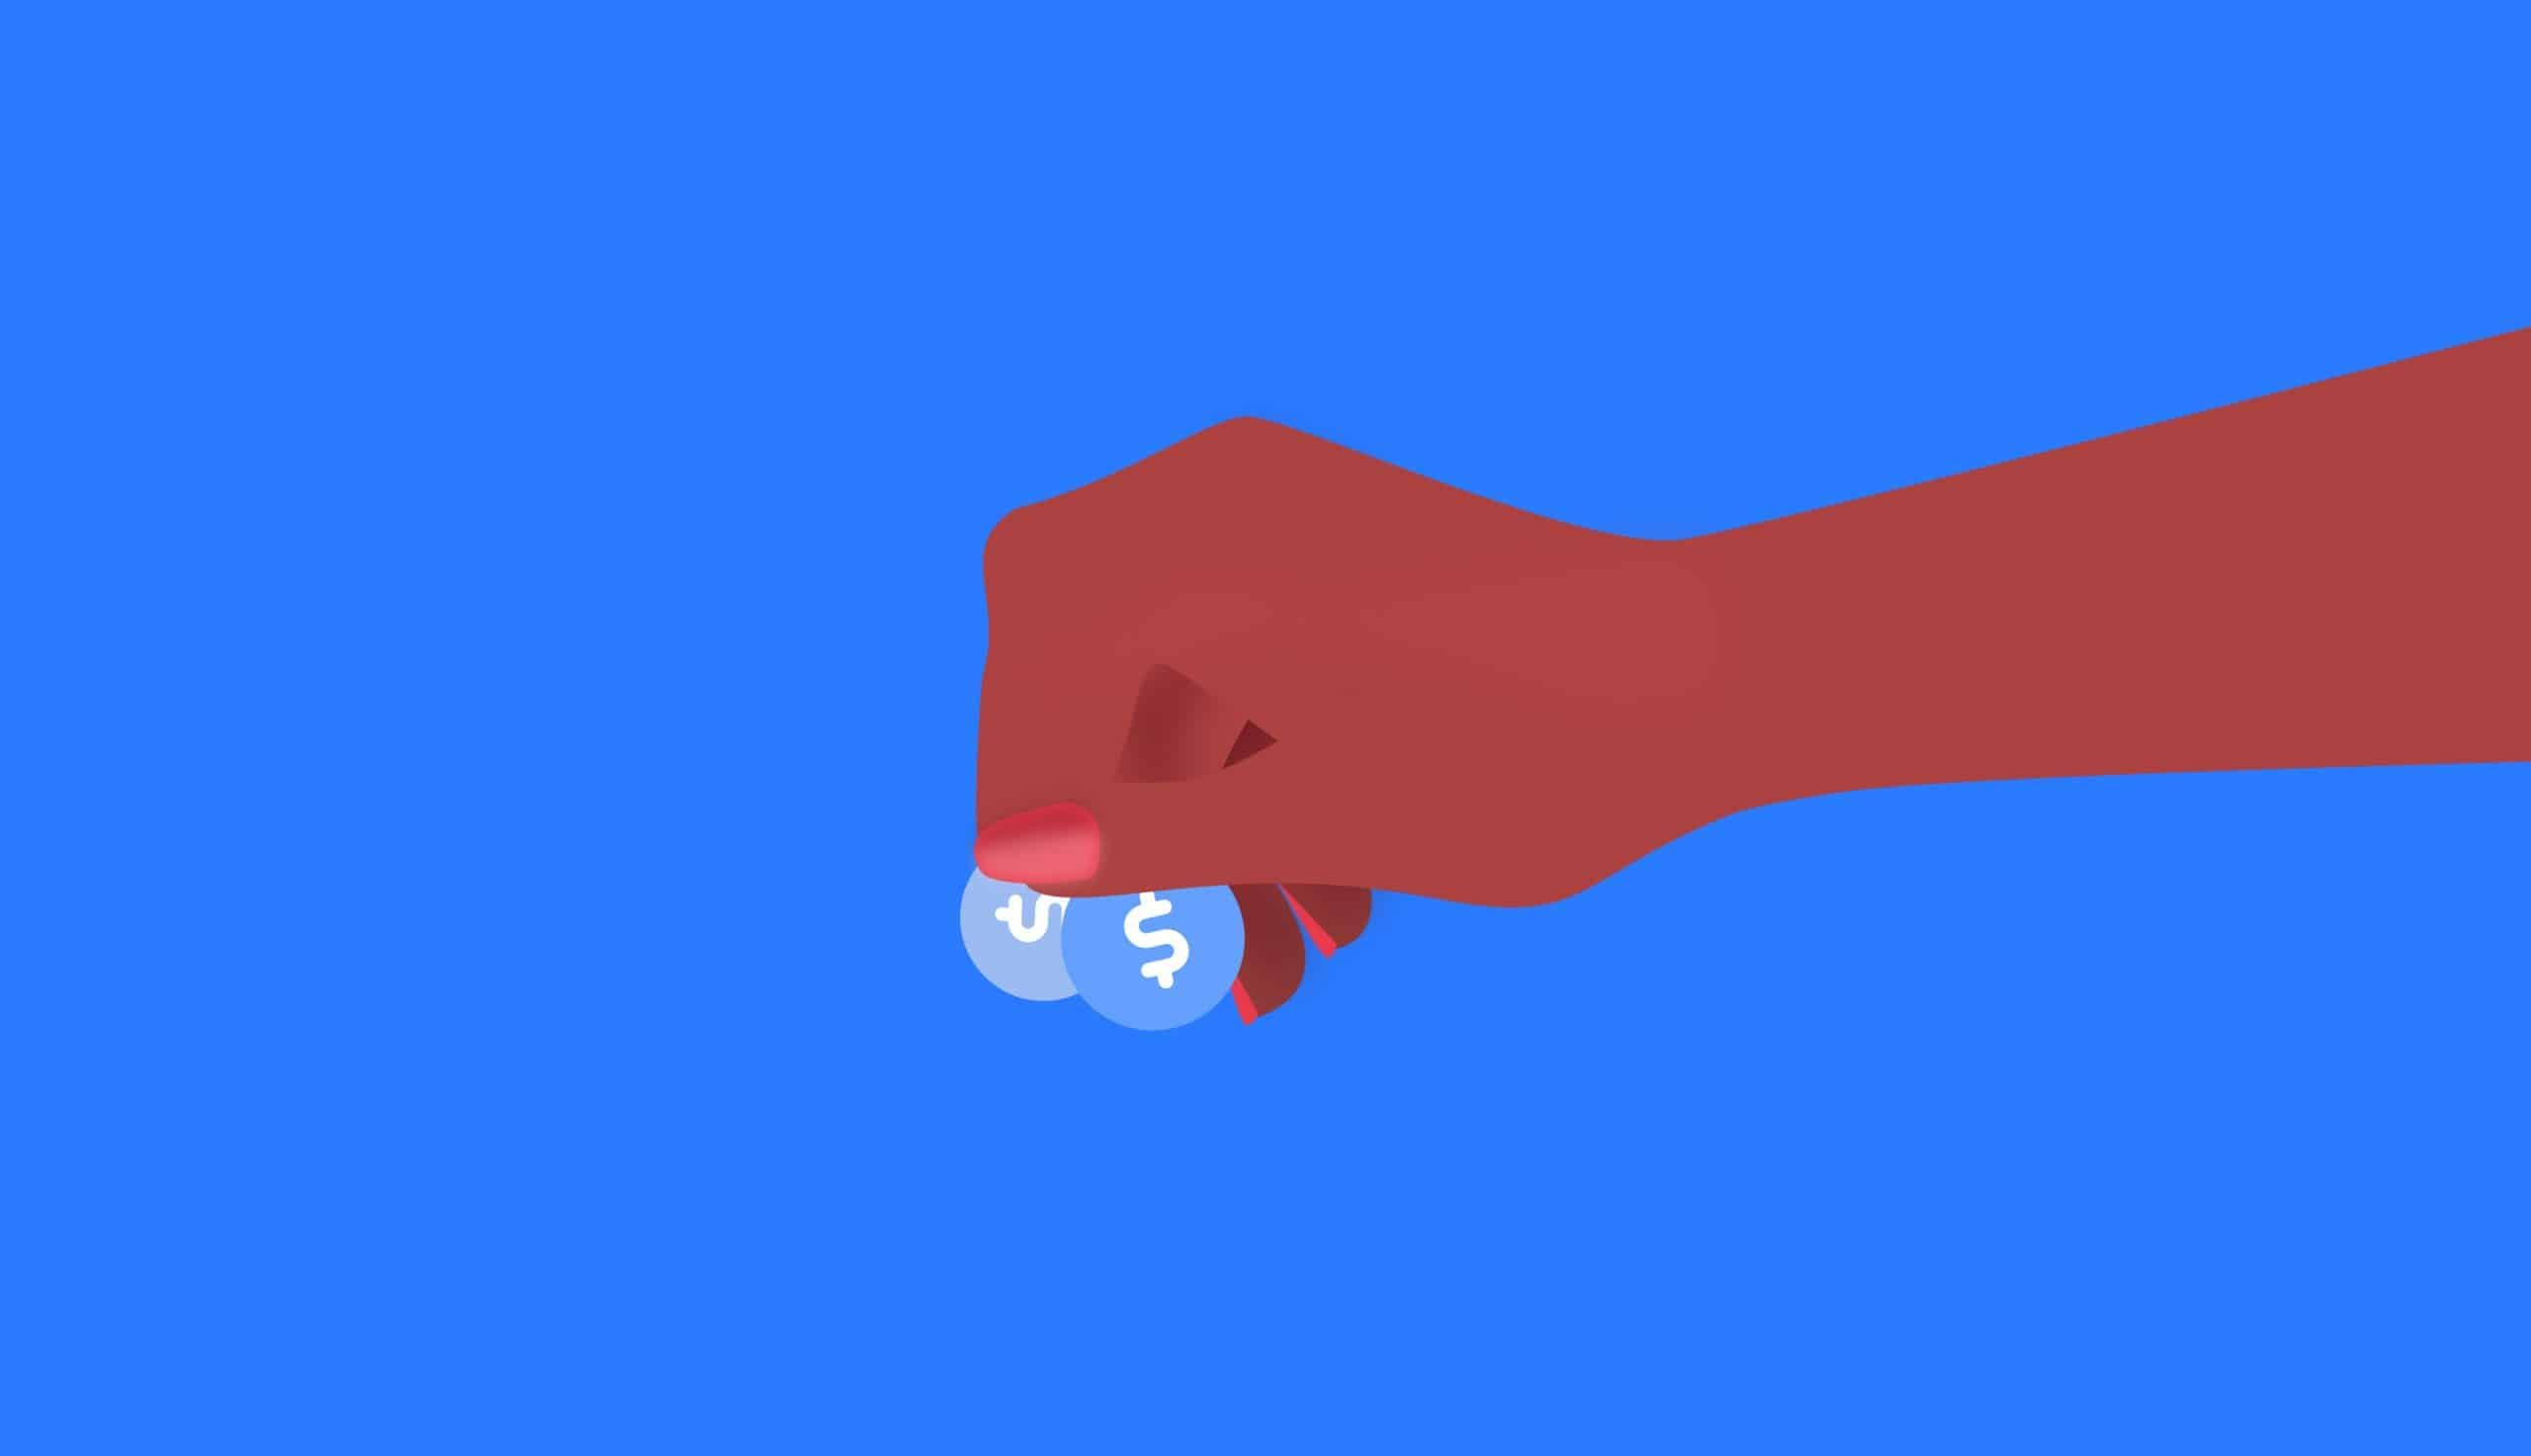 hand holding coins on a blue background